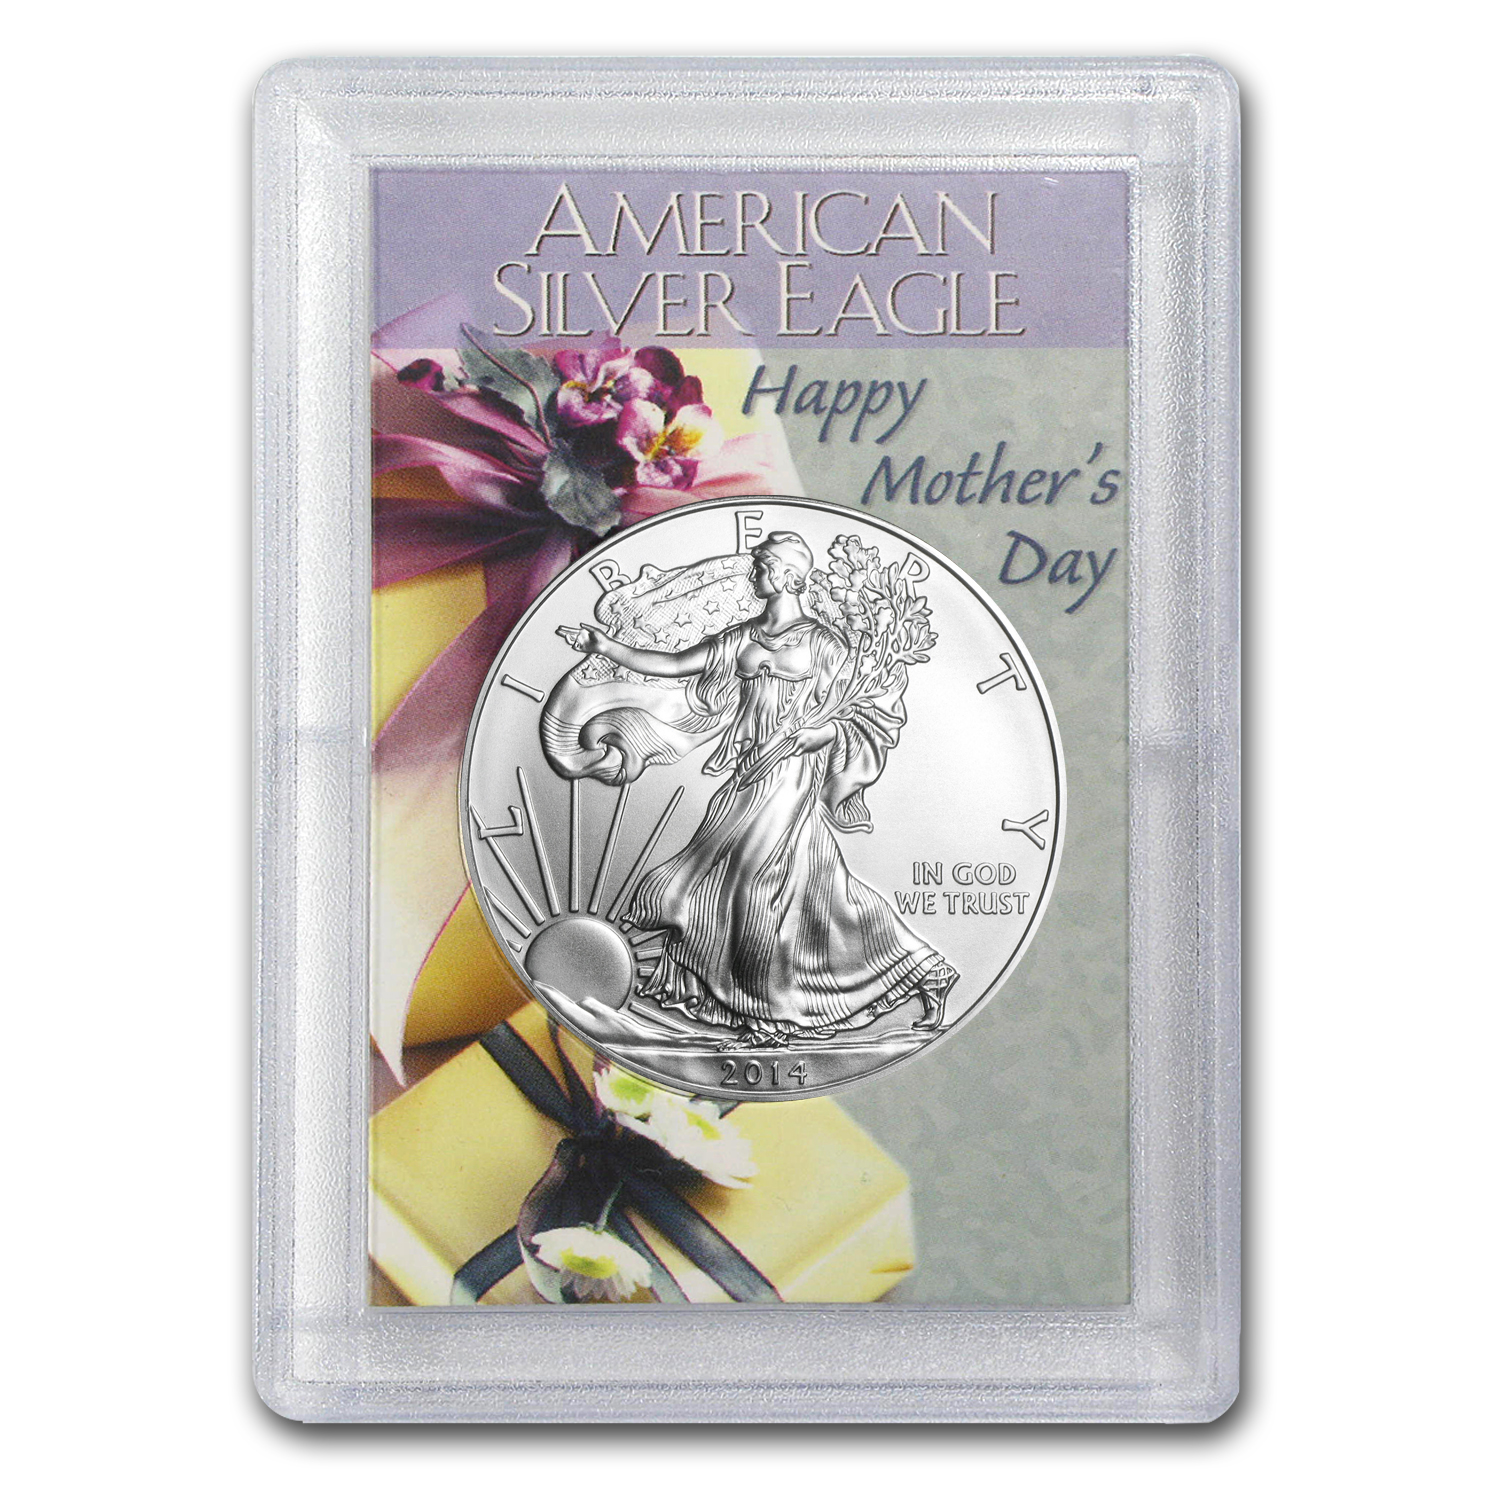 2014 1 oz Silver Eagle in Happy Mother's Day Design Harris Holder